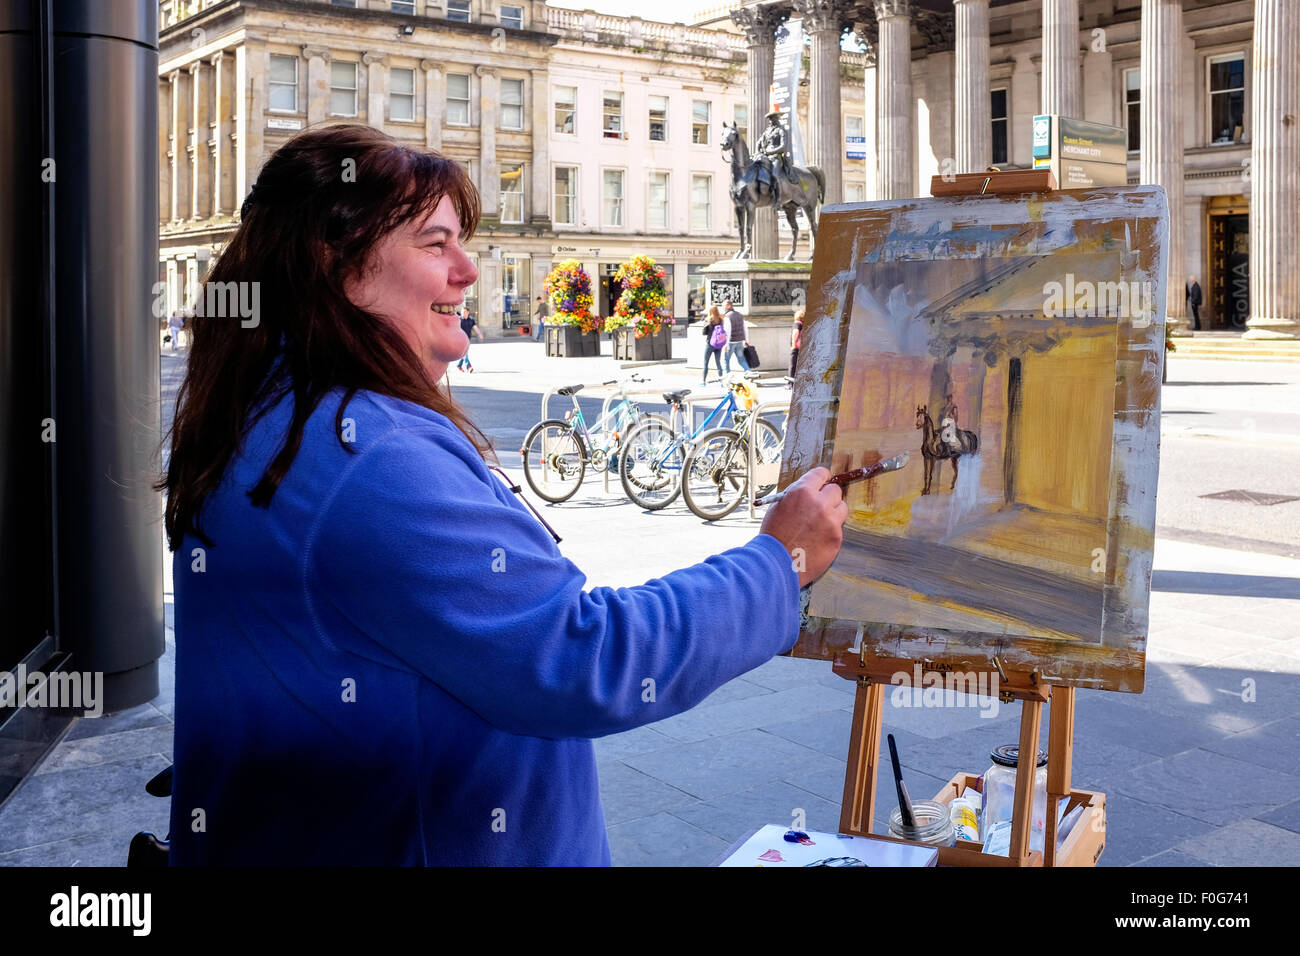 Glasgow, Scotland, UK. 15th Aug, 2015. Almost 150 artists came to Glasgow to take part in the 'Rapid Painter' - Stock Image